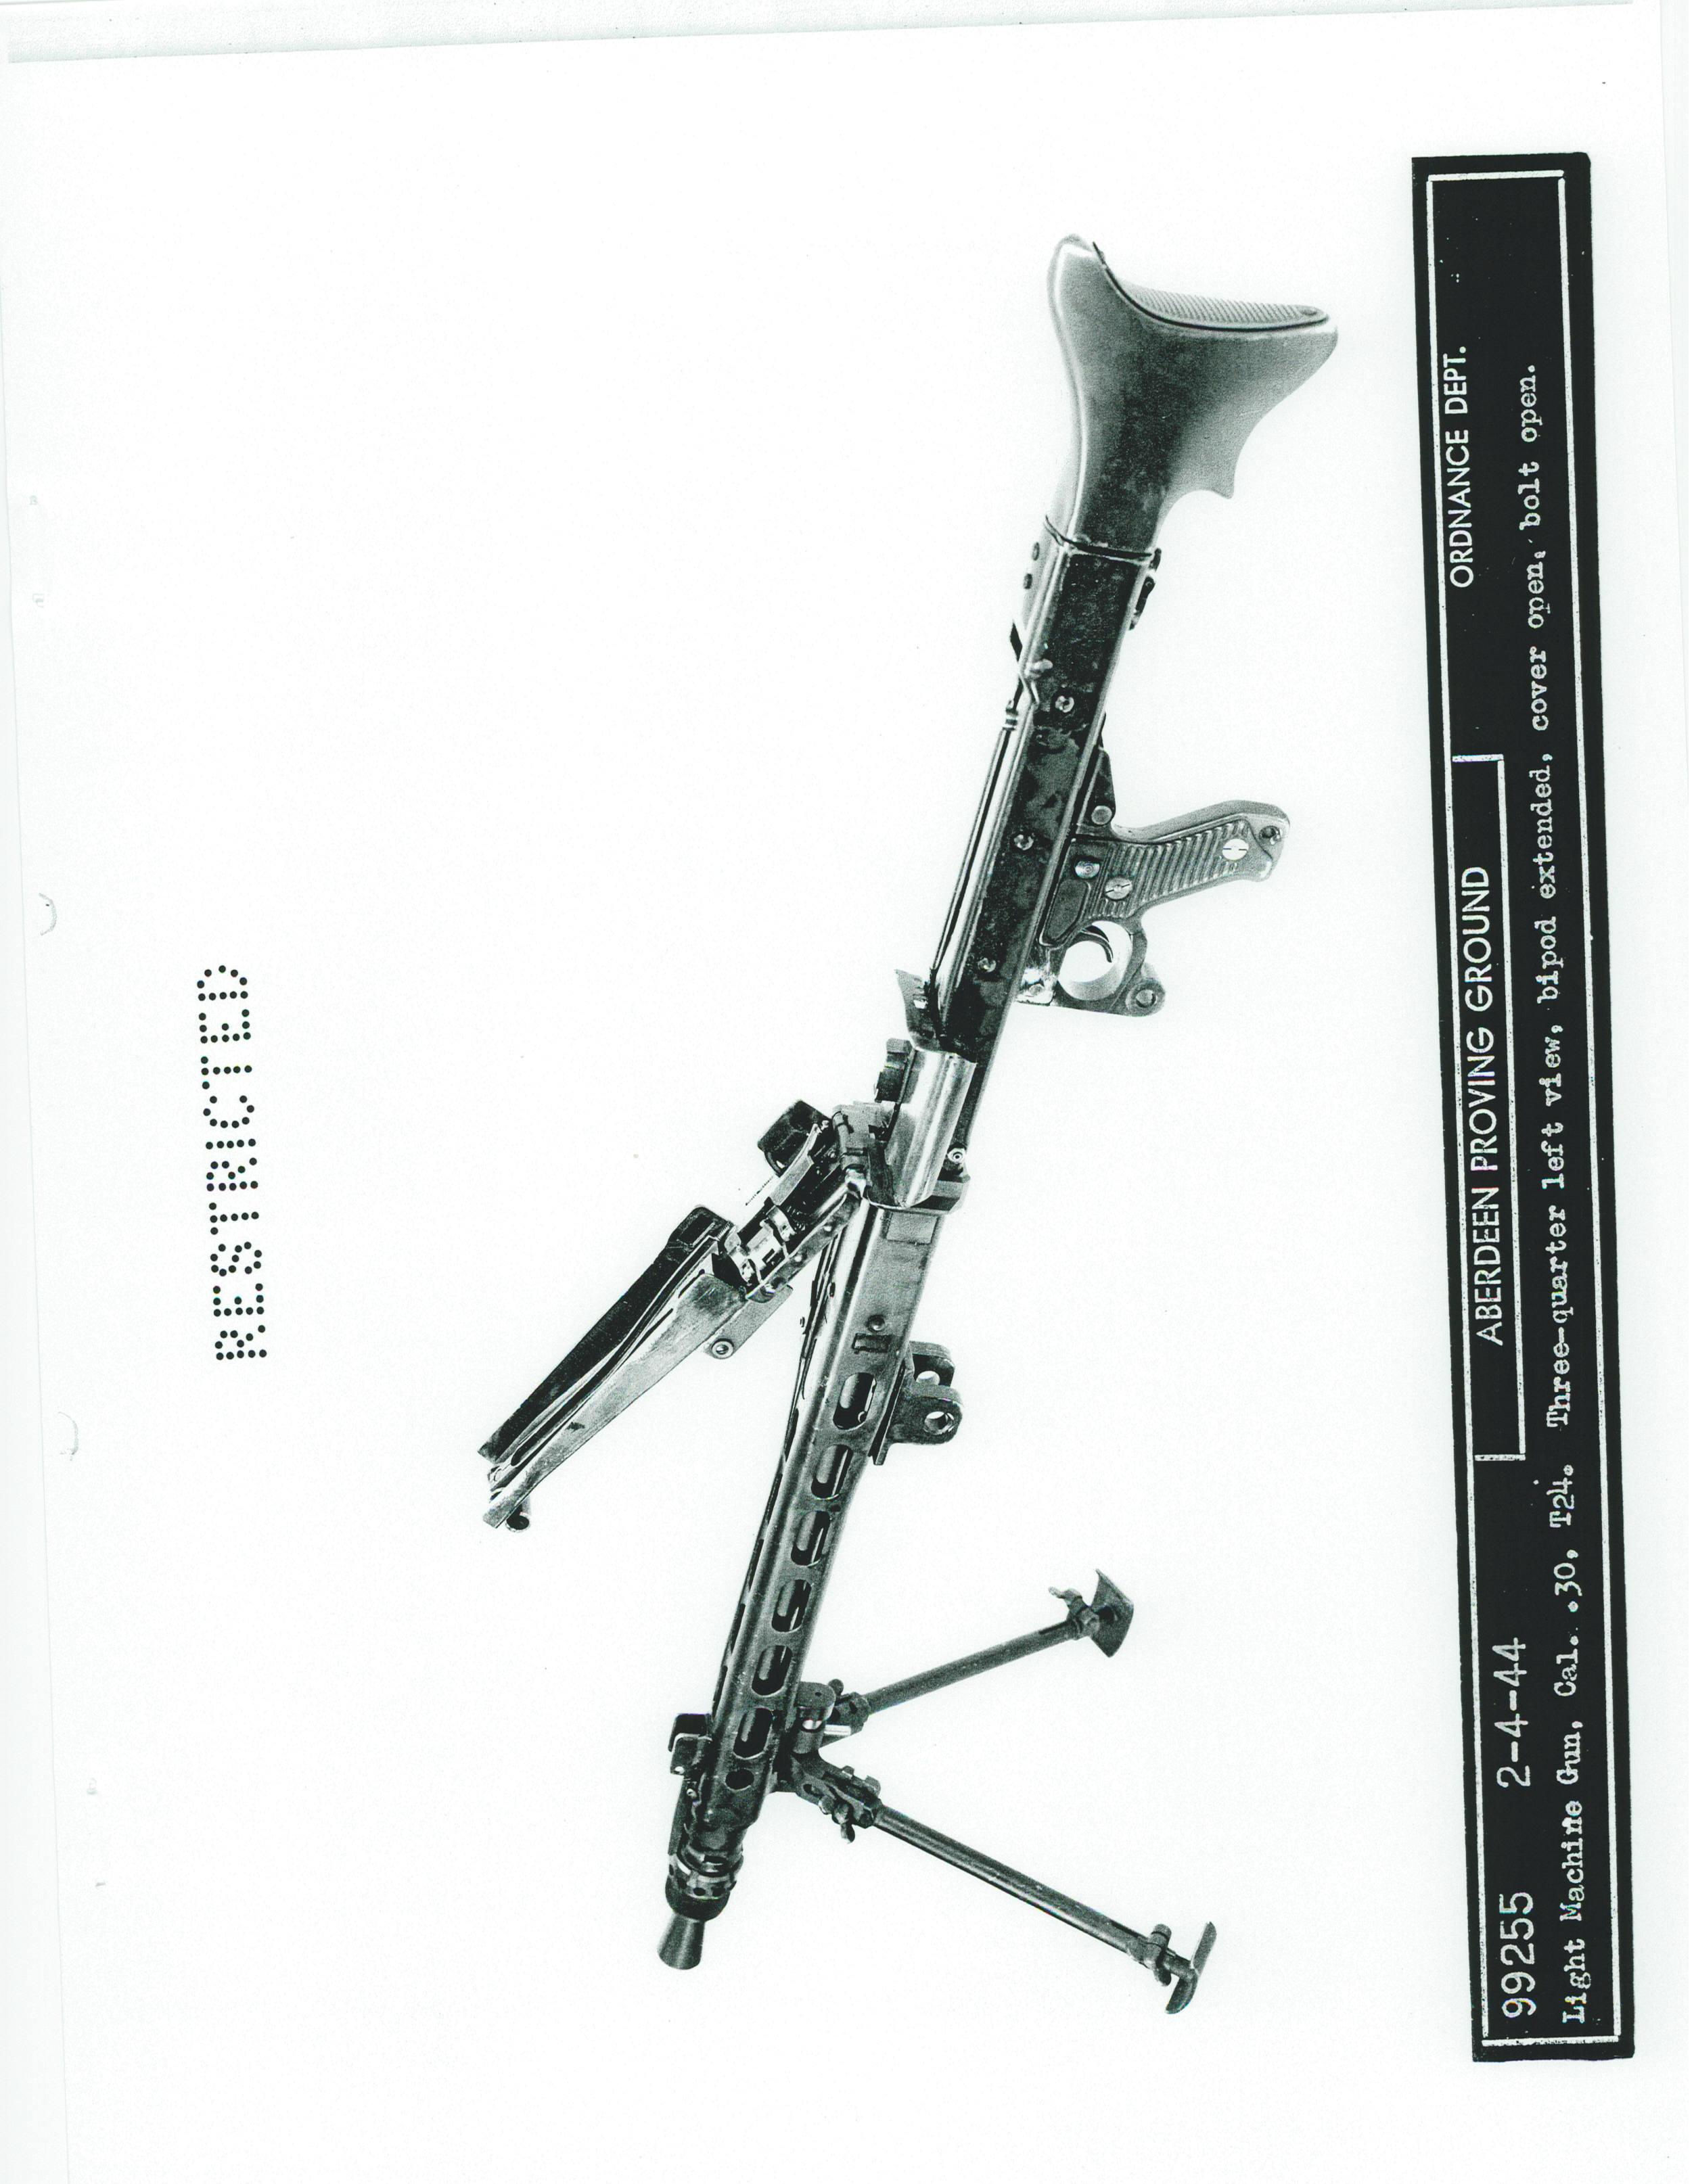 Information about forgottenweapons com forgotten weapons - Information About Forgottenweapons Com Forgotten Weapons Information About Forgottenweapons Com Forgotten Weapons 35